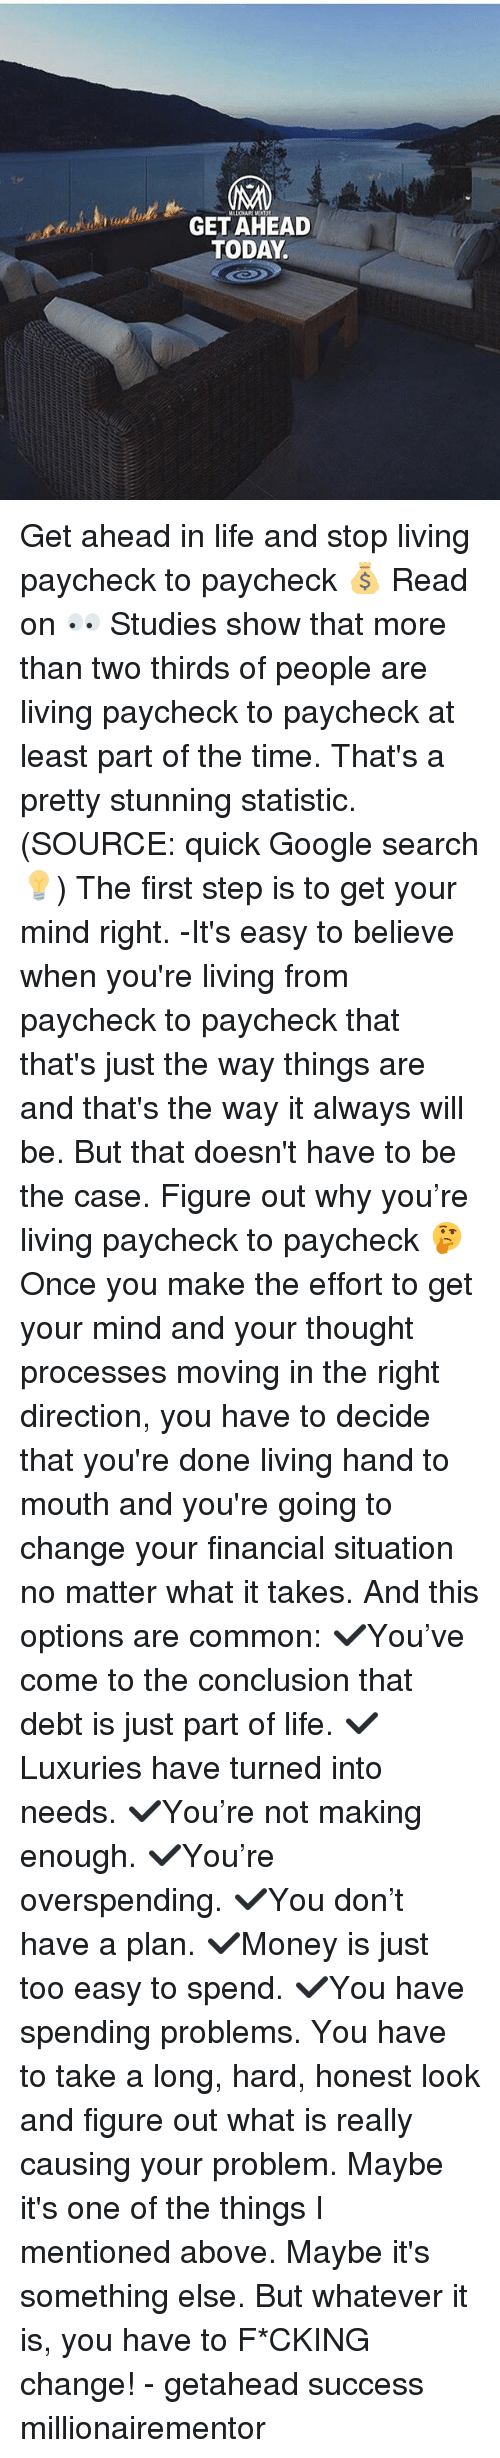 Google, Life, and Memes: GET AHEAD  TODAY Get ahead in life and stop living paycheck to paycheck 💰 Read on 👀 Studies show that more than two thirds of people are living paycheck to paycheck at least part of the time. That's a pretty stunning statistic. (SOURCE: quick Google search💡) The first step is to get your mind right. -It's easy to believe when you're living from paycheck to paycheck that that's just the way things are and that's the way it always will be. But that doesn't have to be the case. Figure out why you're living paycheck to paycheck 🤔 Once you make the effort to get your mind and your thought processes moving in the right direction, you have to decide that you're done living hand to mouth and you're going to change your financial situation no matter what it takes. And this options are common: ✔️You've come to the conclusion that debt is just part of life. ✔️Luxuries have turned into needs. ✔️You're not making enough. ✔️You're overspending. ✔️You don't have a plan. ✔️Money is just too easy to spend. ✔️You have spending problems. You have to take a long, hard, honest look and figure out what is really causing your problem. Maybe it's one of the things I mentioned above. Maybe it's something else. But whatever it is, you have to F*CKING change! - getahead success millionairementor